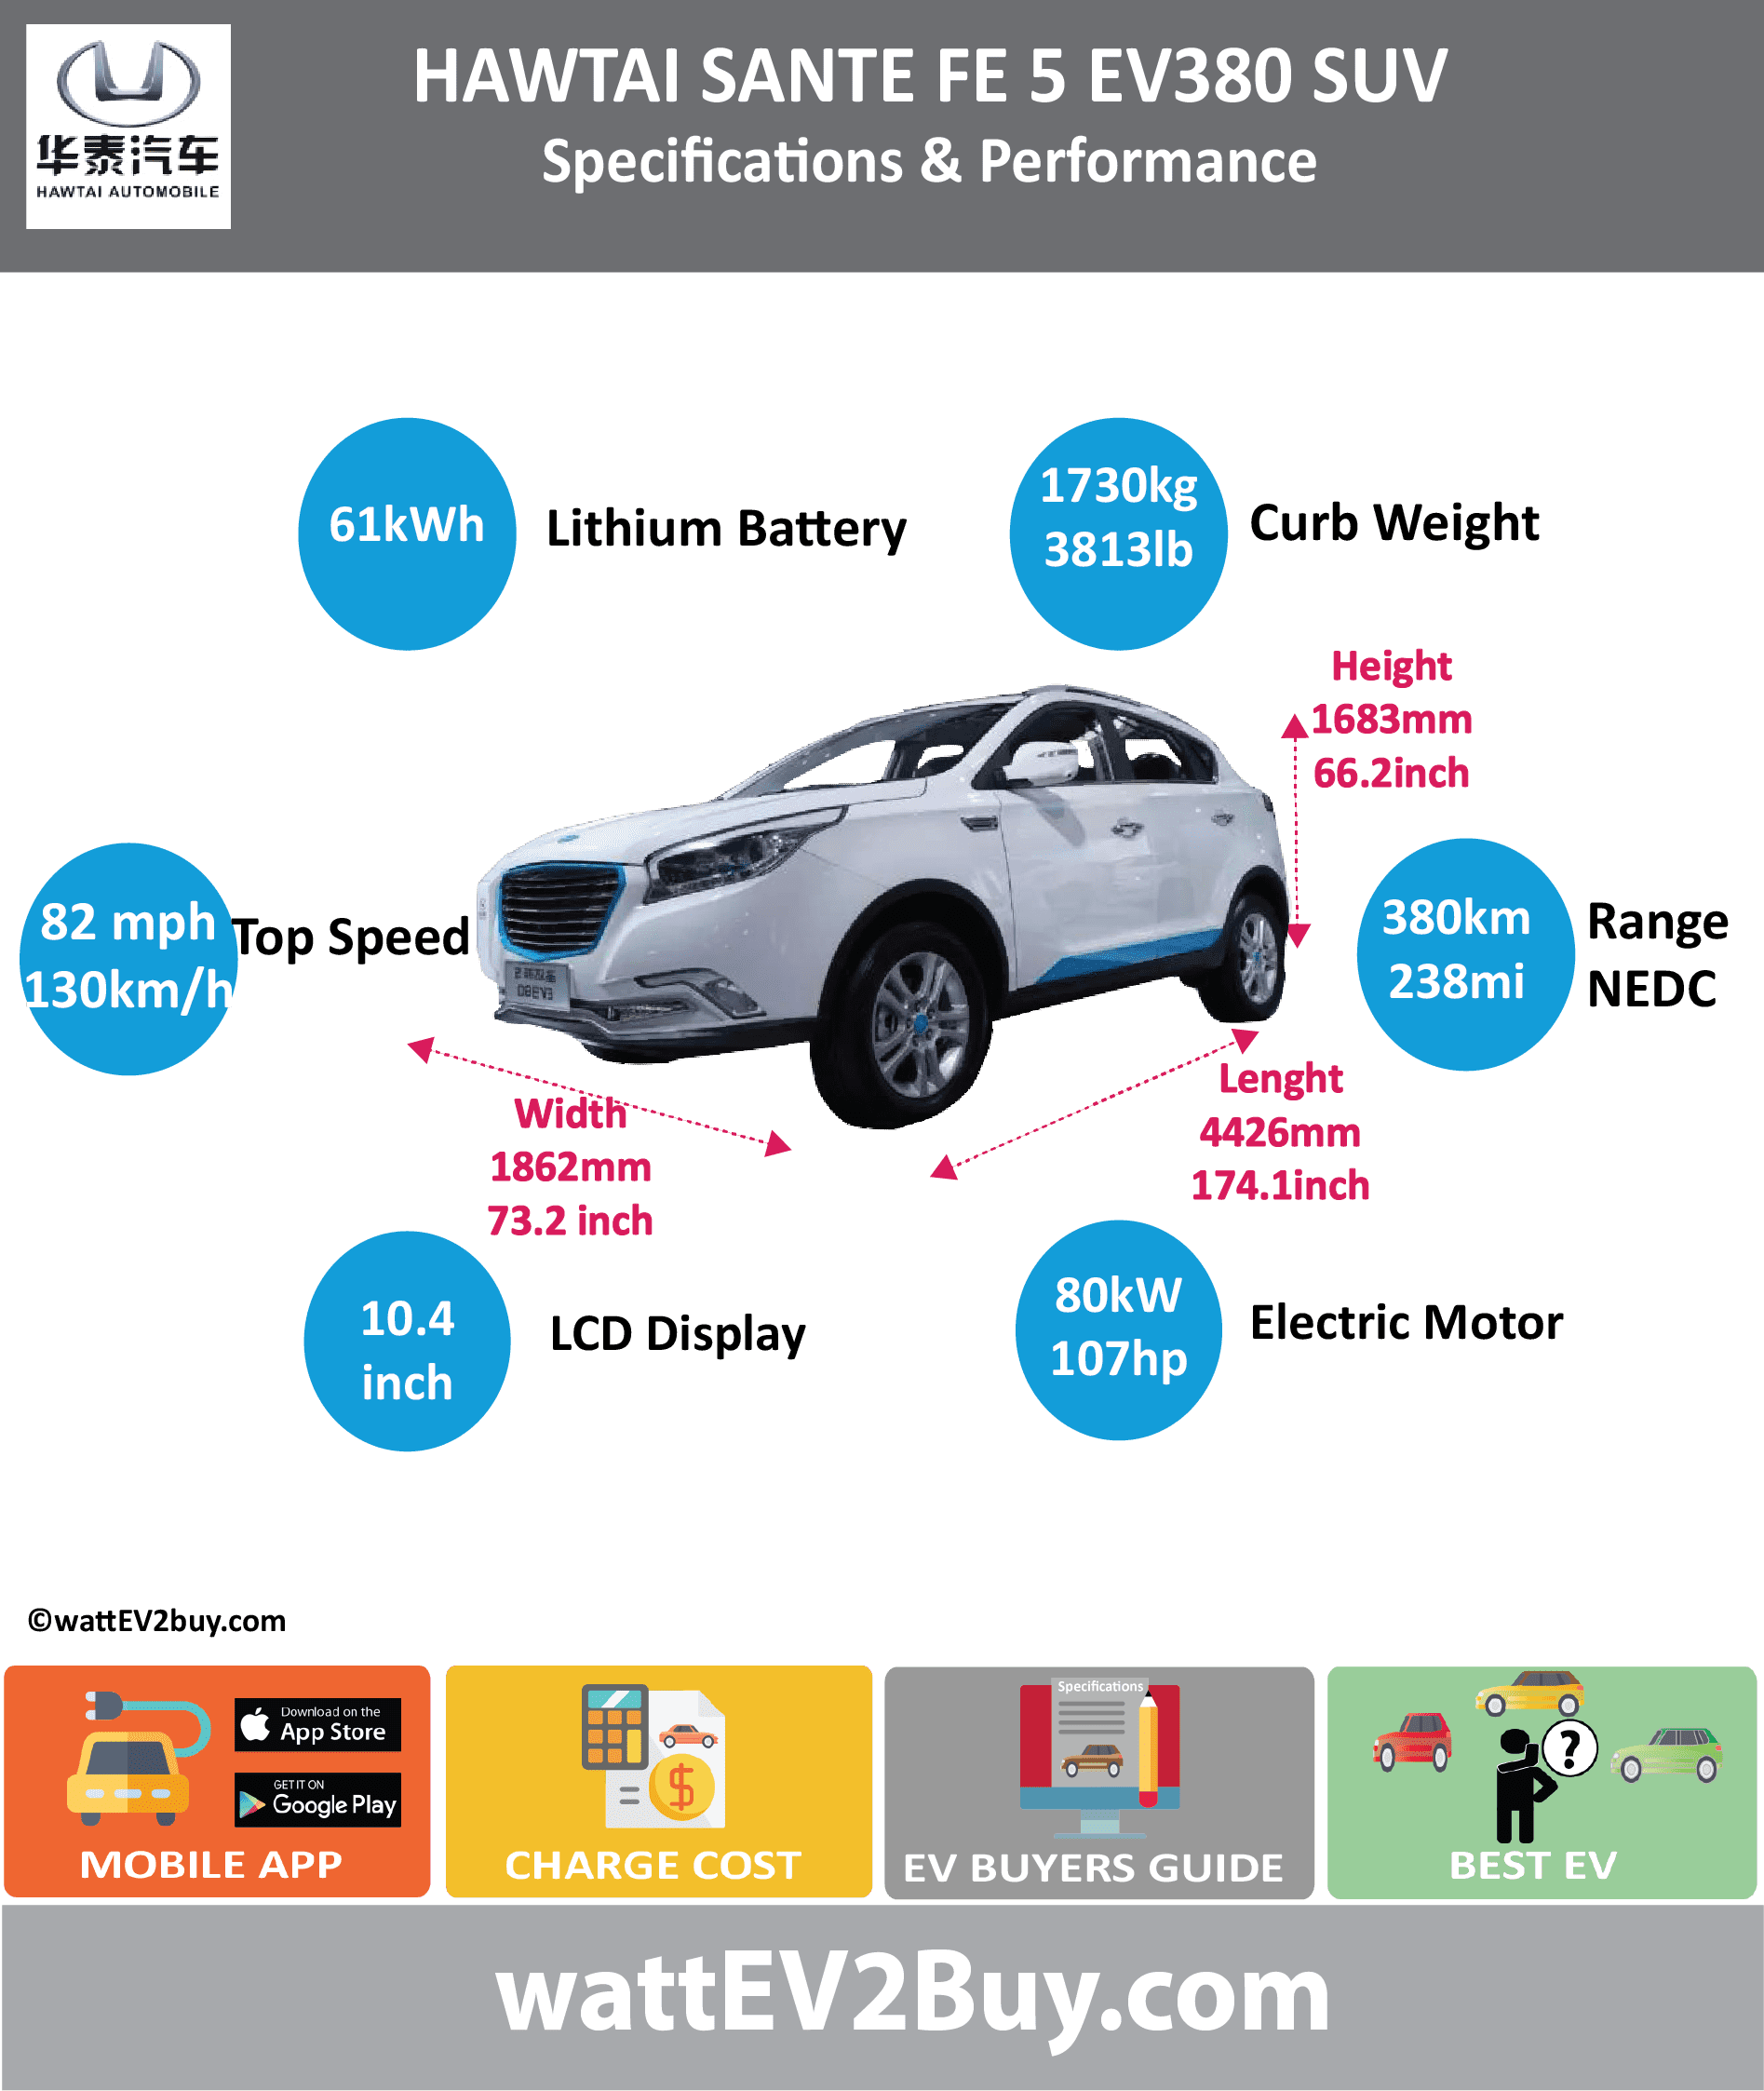 Hawtai Sante Fe 5 EV380 SUV Specs wattev2Buy.com 2018 Battery Chemistry Battery Capacity kWh 61 Battery Nominal rating kWh Voltage V Amps Ah Cells Modules Efficiency Weight (kg) Cell Type SOC Cooling Cycles Battery Type Depth of Discharge (DOD) Energy Density Wh/kg Battery Manufacturer Shenzhen Wo Tema Battery Co., Ltd Battery Warranty - years Battery Warranty - km Battery Warranty - miles Battery Electric Range - at constant 38mph 281.25 Battery Electric Range - at constant 60km/h 450 Battery Electric Range - NEDC Mi 237.5 Battery Electric Range - NEDC km 380 Battery Electric Range - CCM Mi Battery Electric Range - CCM km Battery Electric Range - EPA Mi Battery Electric Range - EPA km Electric Top Speed - mph 81.25 Electric Top Speed - km/h 130 Acceleration 0 - 100km/h sec Acceleration 0 - 50km/h sec Acceleration 0 - 62mph sec Acceleration 0 - 60mph sec Acceleration 0 - 37.2mph sec Wireless Charging Direct Current Fast Charge kW Charger Efficiency Onboard Charger kW Onboard Charger Optional kW Charging Cord - amps Charging Cord - volts LV 1 Charge kW LV 1 Charge Time (Hours) LV 2 Charge kW LV 2 Charge Time (Hours) LV 3 CCS/Combo kW LV 3 Charge Time (min to 70%) LV 3 Charge Time (min to 80%) LV 3 Charge Time (mi) LV 3 Charge Time (km) Supercharger Charging System kW Charger Output Charge Connector Power Outlet kW Power Outlet Amps MPGe Combined - miles MPGe Combined - km MPGe City - miles MPGe City - km MPGe Highway - miles MPGe Highway - km Max Power - hp (Electric Max) Max Power - kW (Electric Max) Max Torque - lb.ft (Electric Max) Max Torque - N.m (Electric Max) Drivetrain Generator Motor Type Electric Motor Manufacturer Shanghai Electric Drive Co., Ltd Electric Motor Output kW 80 Electric Motor Output hp 107.2816 Transmission Electric Motor - Rear Max Power - hp (Rear) Max Power - kW (Rear) Max Torque - lb.ft (Rear) Max Torque - N.m (Rear) Electric Motor - Front Max Power - hp (Front) Max Power - kW (Front) Max Torque - lb.ft (Front) Max Torque - N.m (Front) Energy Consumption kWh/100km Energy Consumption kWh/100miles Deposit GB Battery Lease per month EU Battery Lease per month MSRP (expected) EU MSRP (before incentives & destination) GB MSRP (before incentives & destination) US MSRP (before incentives & destination) CHINA MSRP (before incentives & destination) MSRP after incentives Vehicle Trims Doors Seating 5 Dimensions Luggage (L) GVWR (kg) 2139 GVWR (lbs) Curb Weight (kg) 1730 Curb Weight (lbs) 3813.9926 Payload Capacity (kg) Payload Capacity (lbs) Towing Capacity (lbs) Max Load Height (m) Ground Clearance (inc) Ground Clearance (mm) Lenght (mm) 4426 Width (mm) 1862 Height (mm) 1683 Wheelbase (mm) 2660 Lenght (inc) 174.1 Width (inc) 73.2 Height (inc) 66.2 Wheelbase (inc) 104.6 Other Utility Factor Auto Show Unveil Availability Market Segment LCD Screen (inch) 10.4 Class A SUV Safety Level Unveiled Relaunch First Delivery Chassis designed Based On AKA Self-Driving System SAE Autonomous Level Connectivity Unique Extras Incentives Home Charge Installation Public Charging Subsidy Chinese Name 路盛S5EV380 Model Code SDH6440BEVGL1 WEBSITE